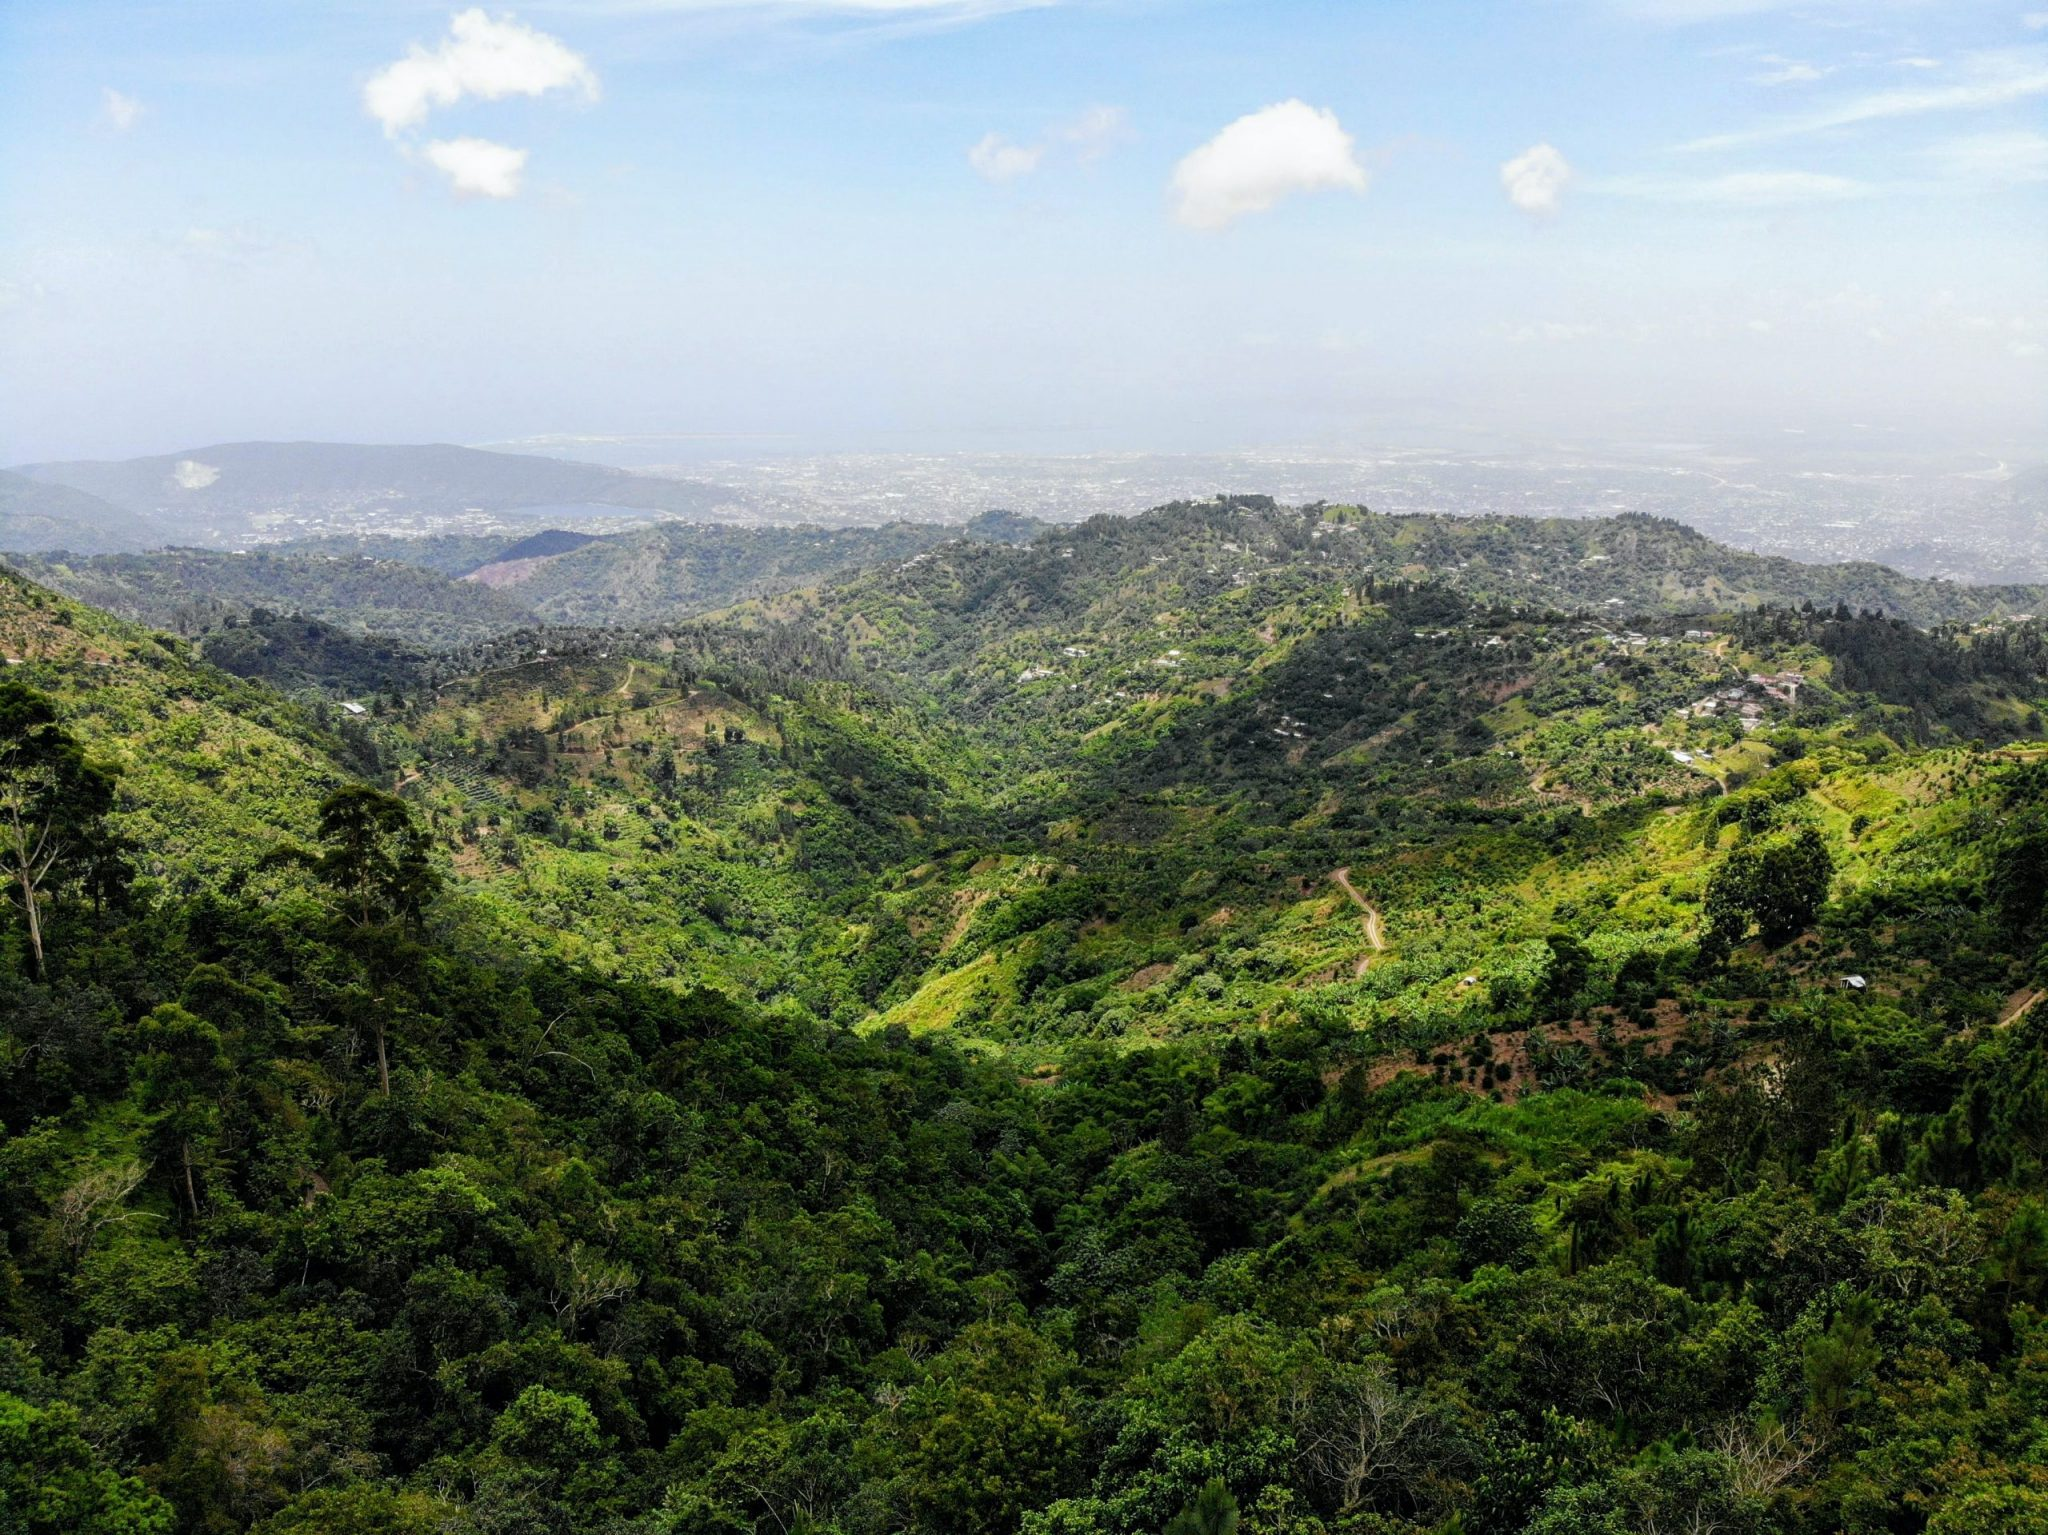 A photo of Jamaican mountains